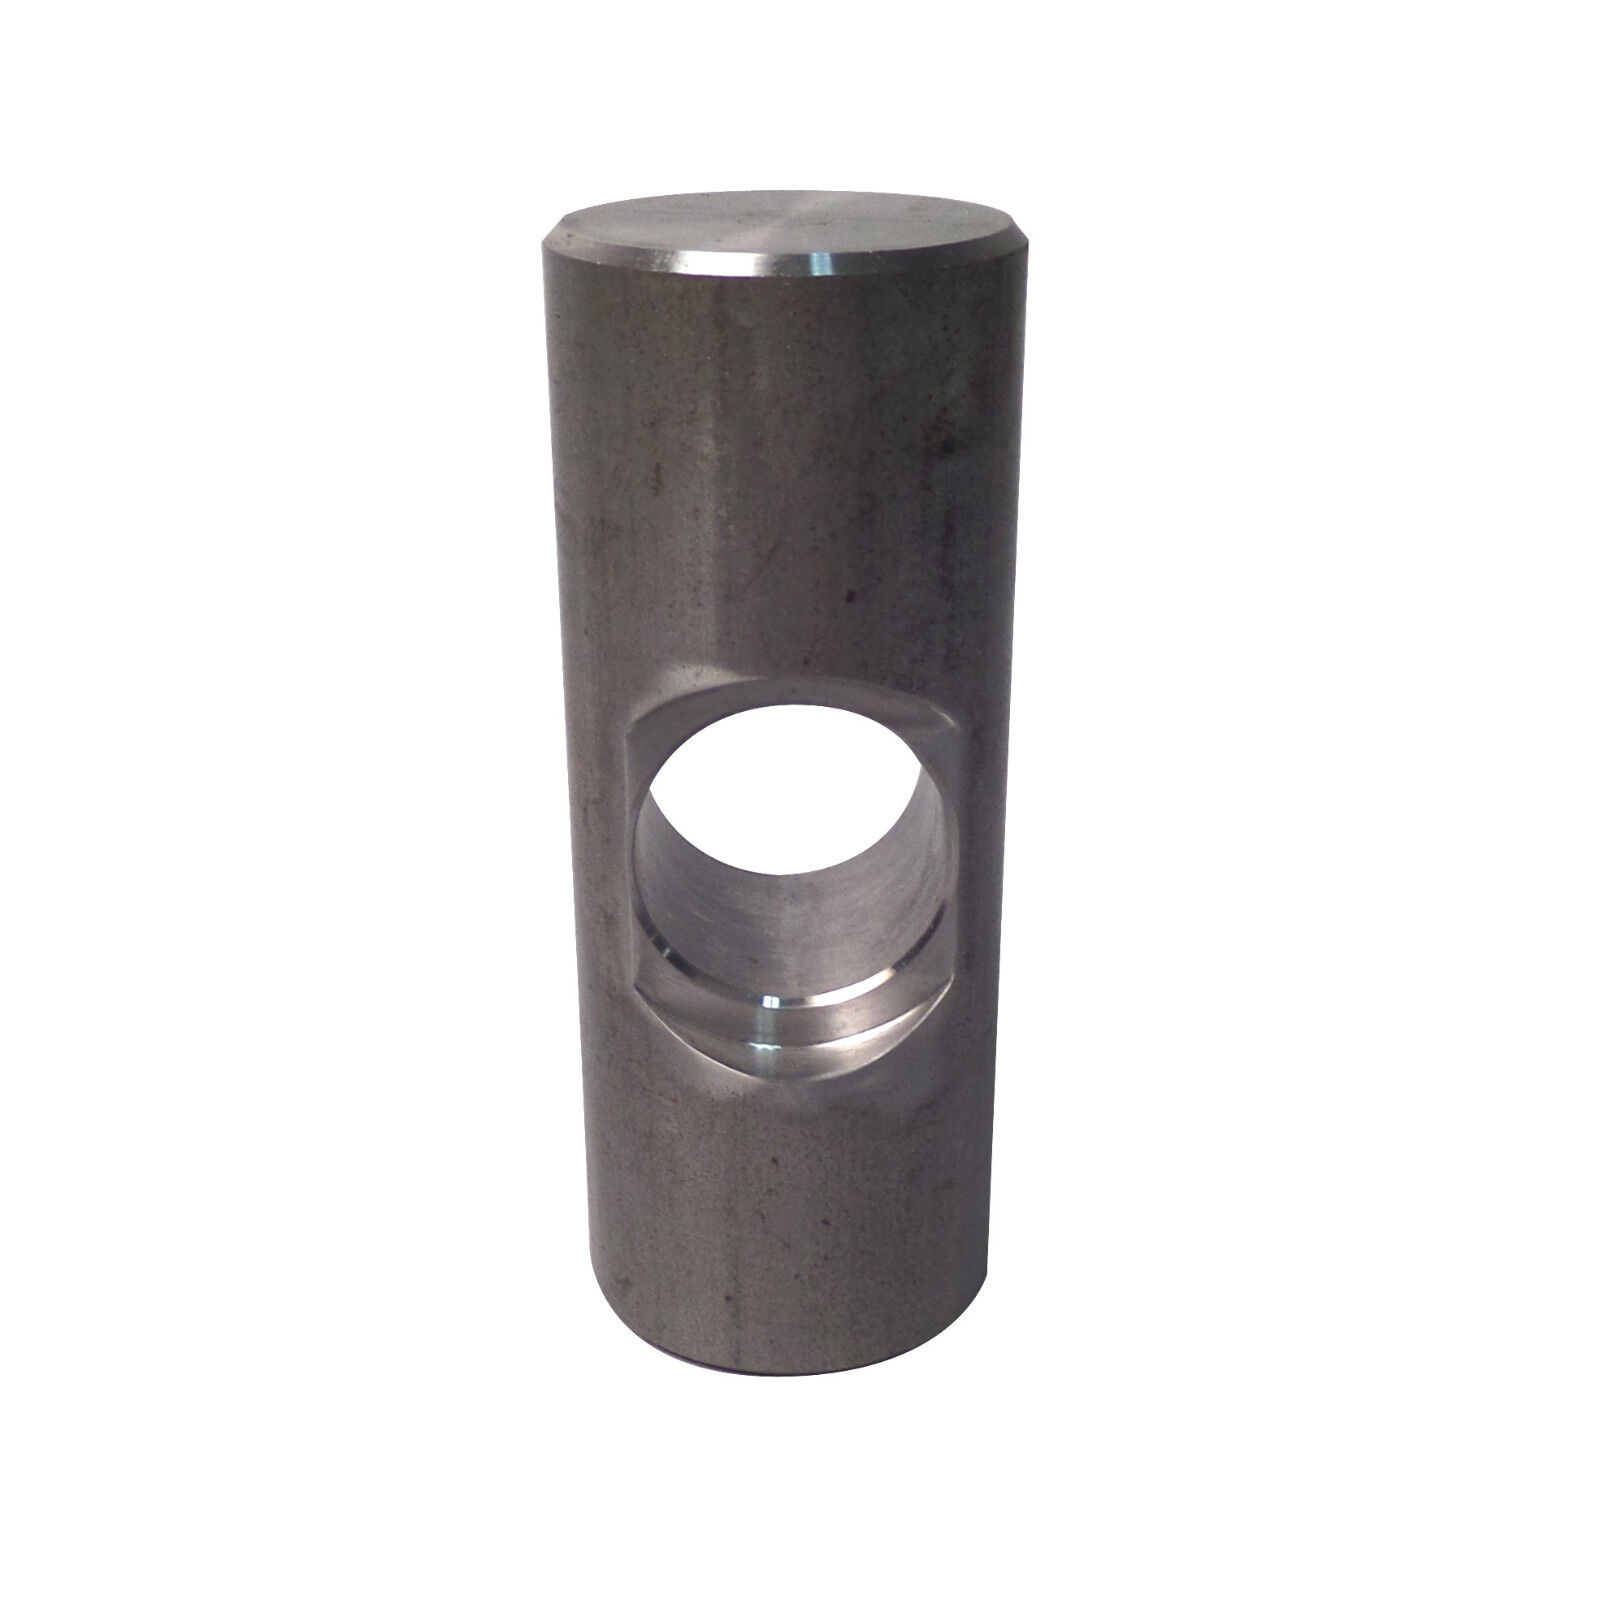 Bead Loosener Cylinder Rod / Pivot Pin for COATS Tire Changers 8182550, 182550